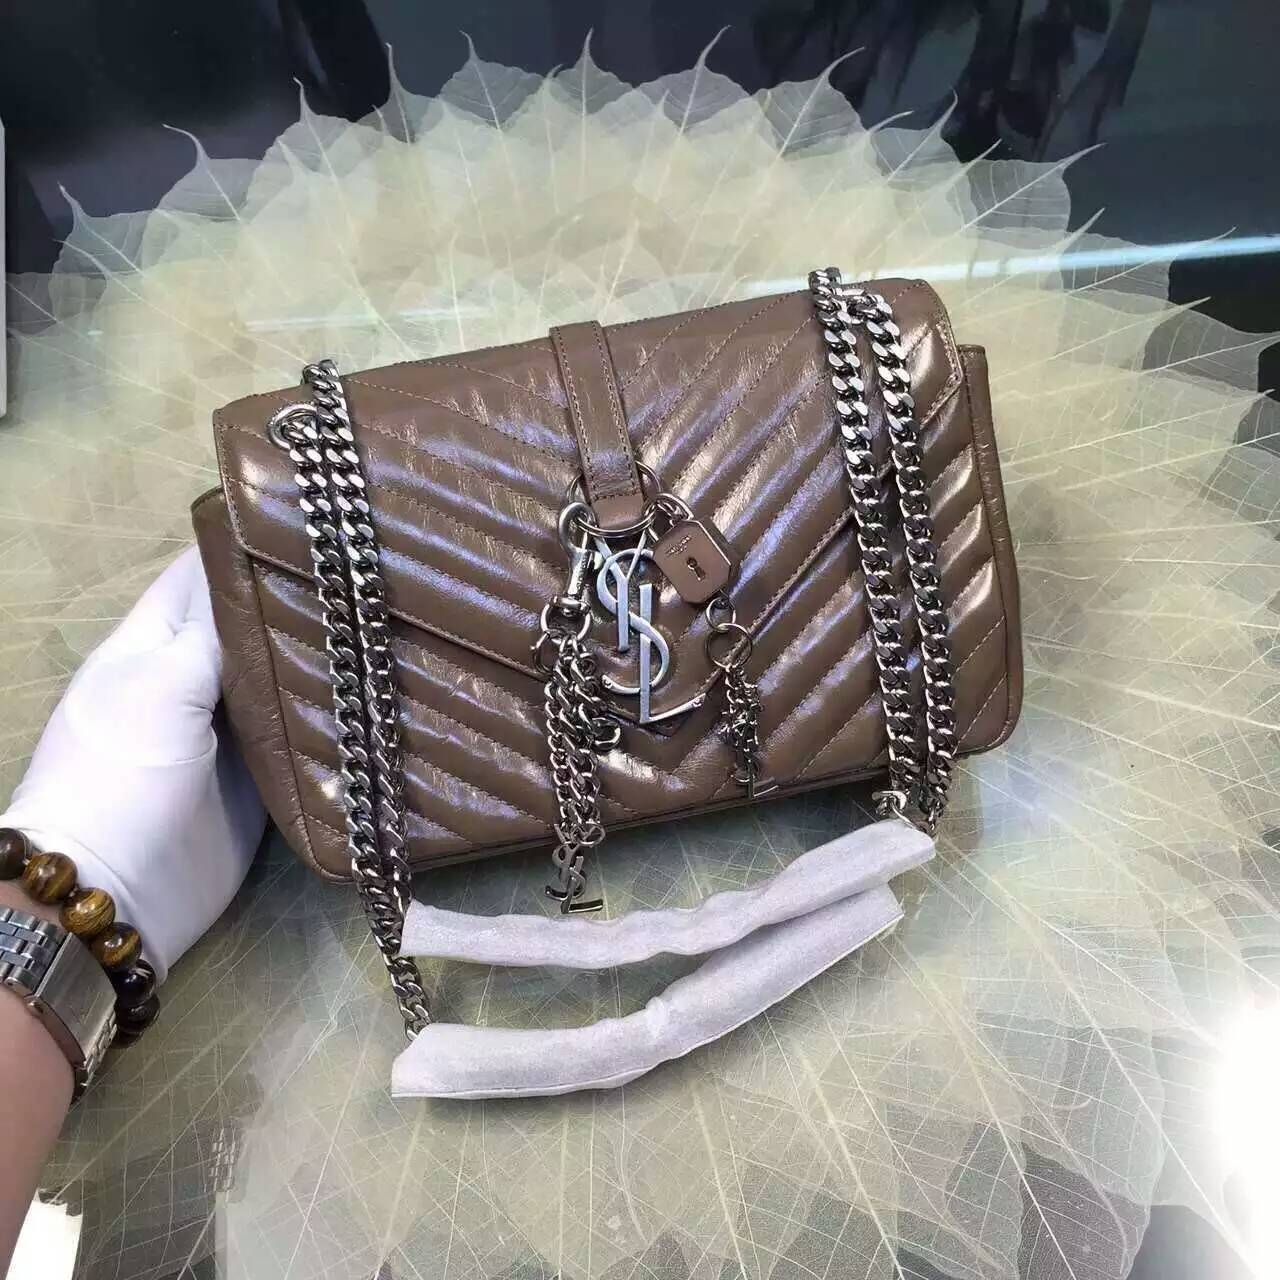 2016 Cheap YSL Out Sale with Free Shipping-Saint Laurent Classic Medium Baby Monogram Satchel in Khaki Matelasse Leather Silver